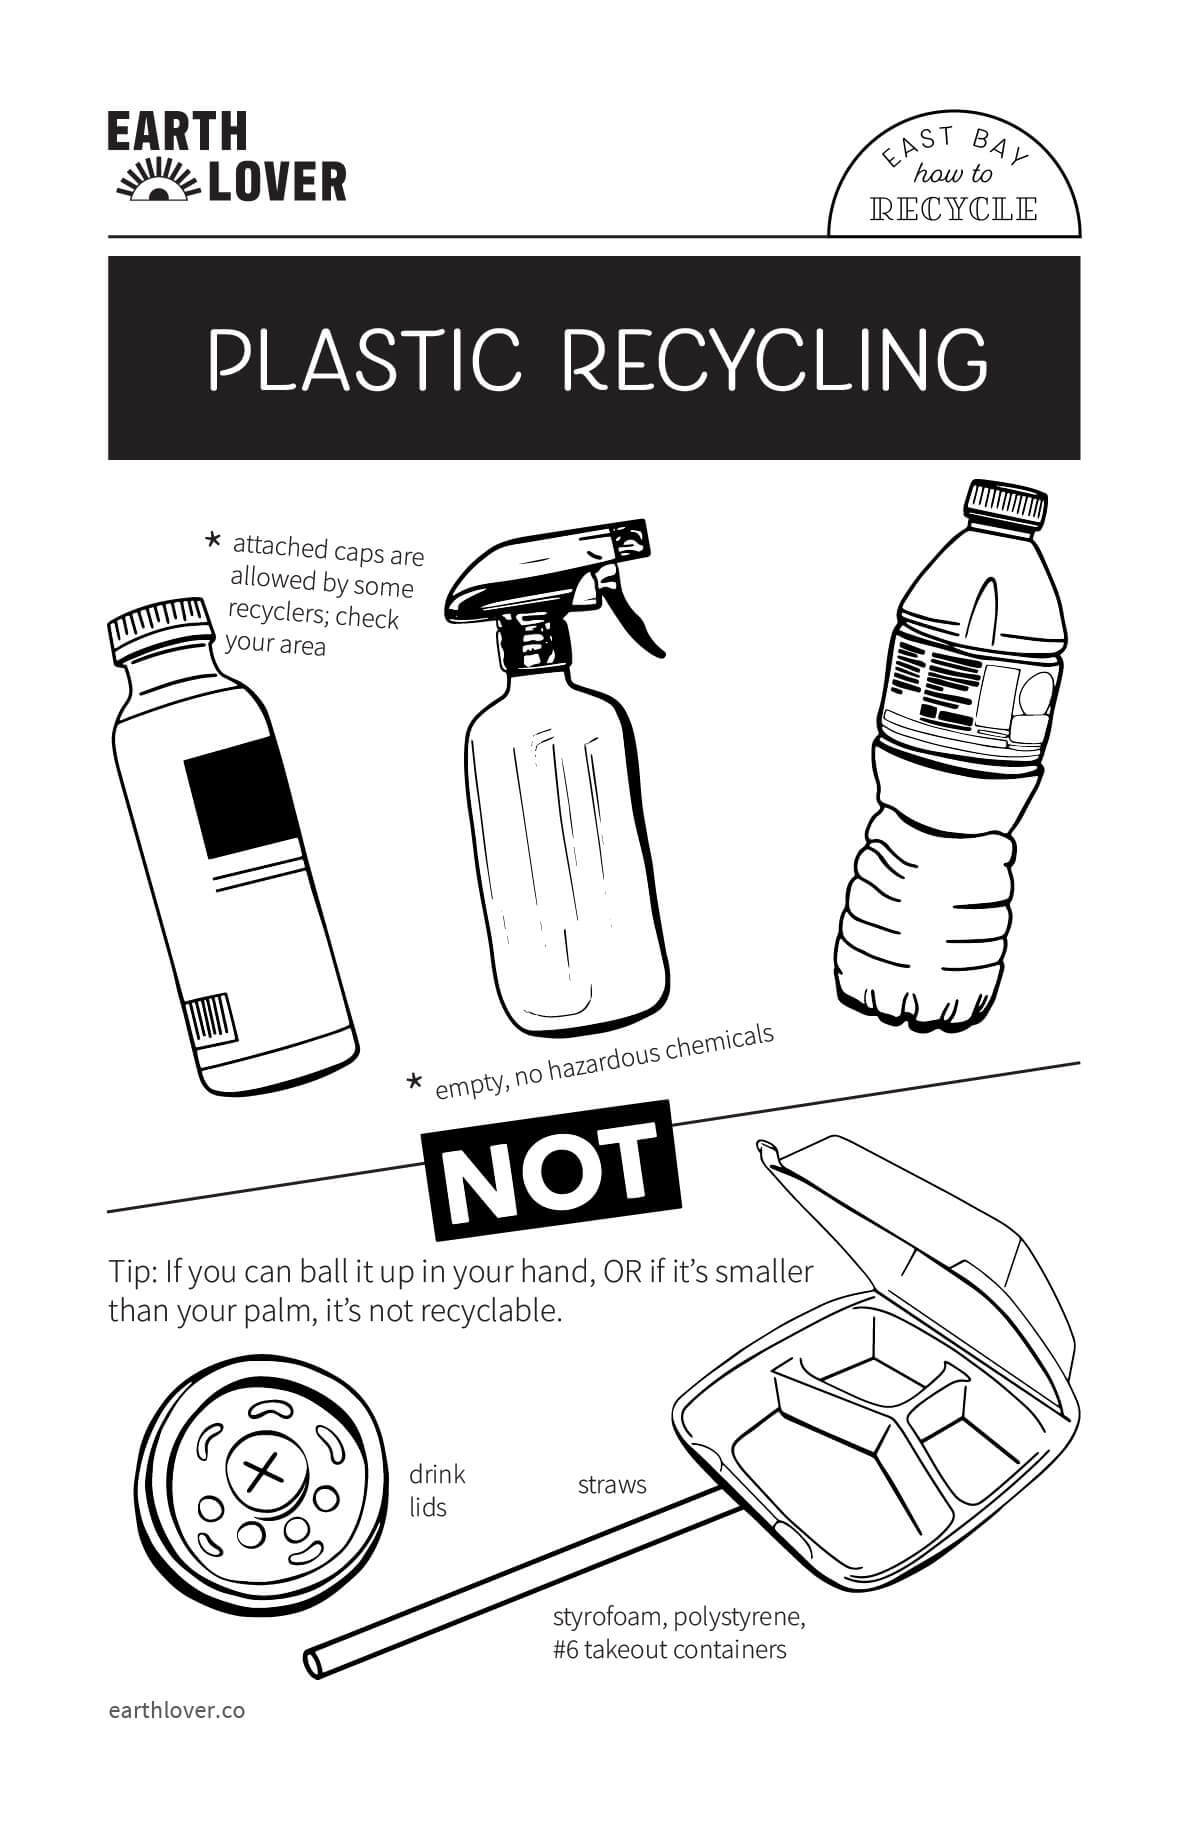 Plastic recycling guide